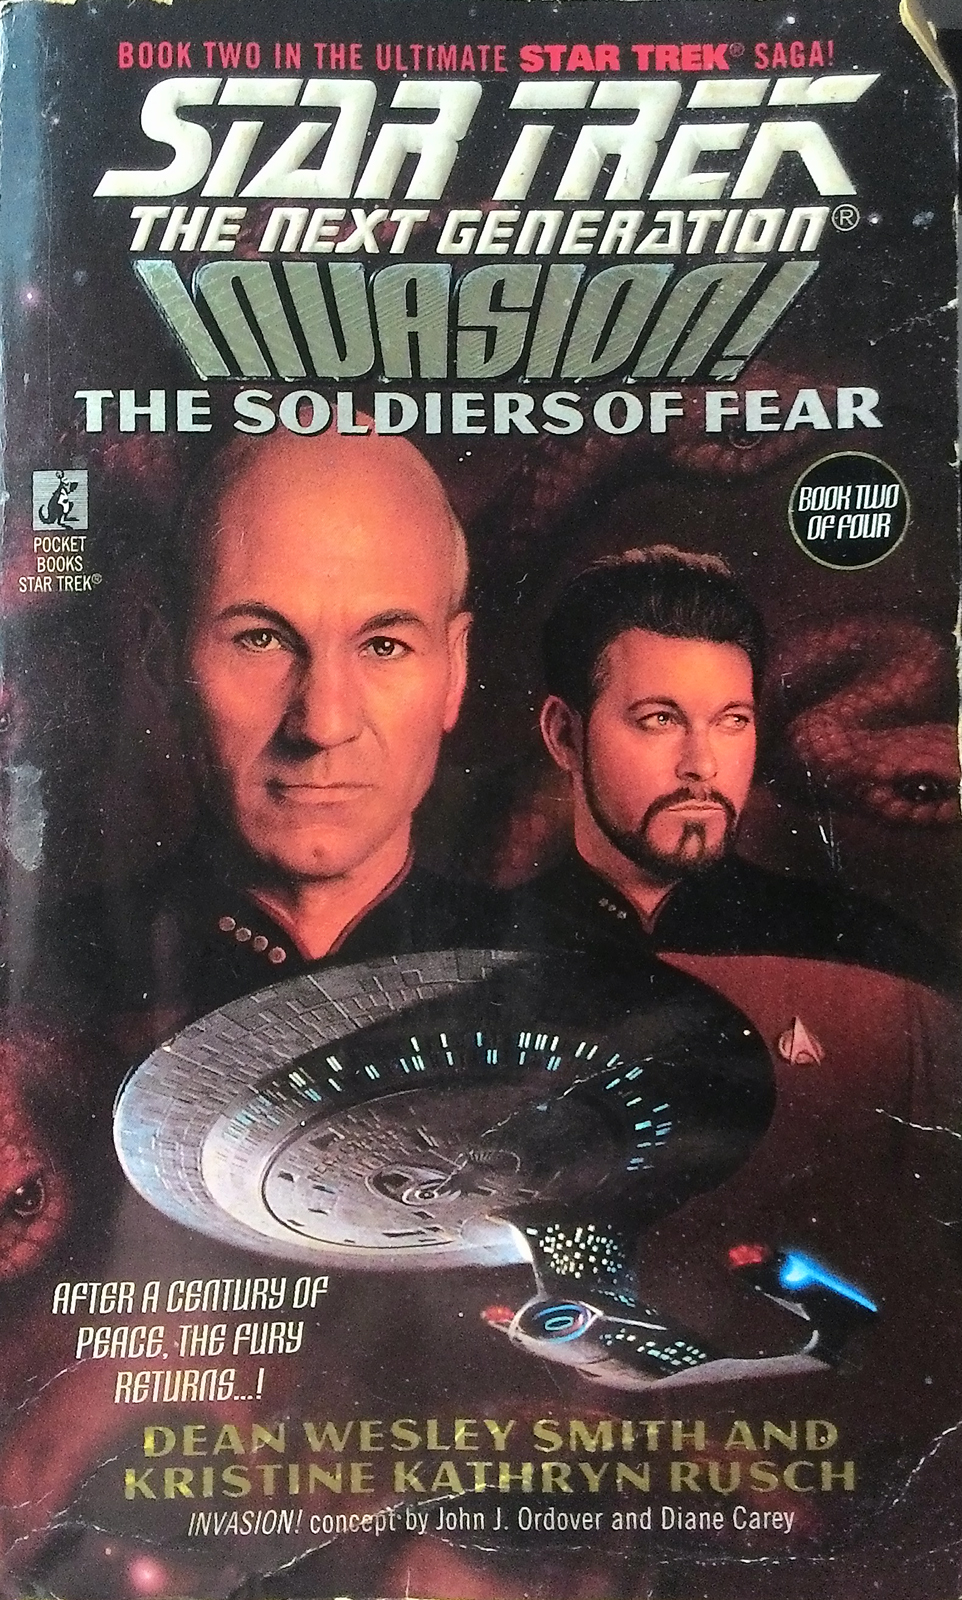 File:The Soldiers of Fear cover.jpg